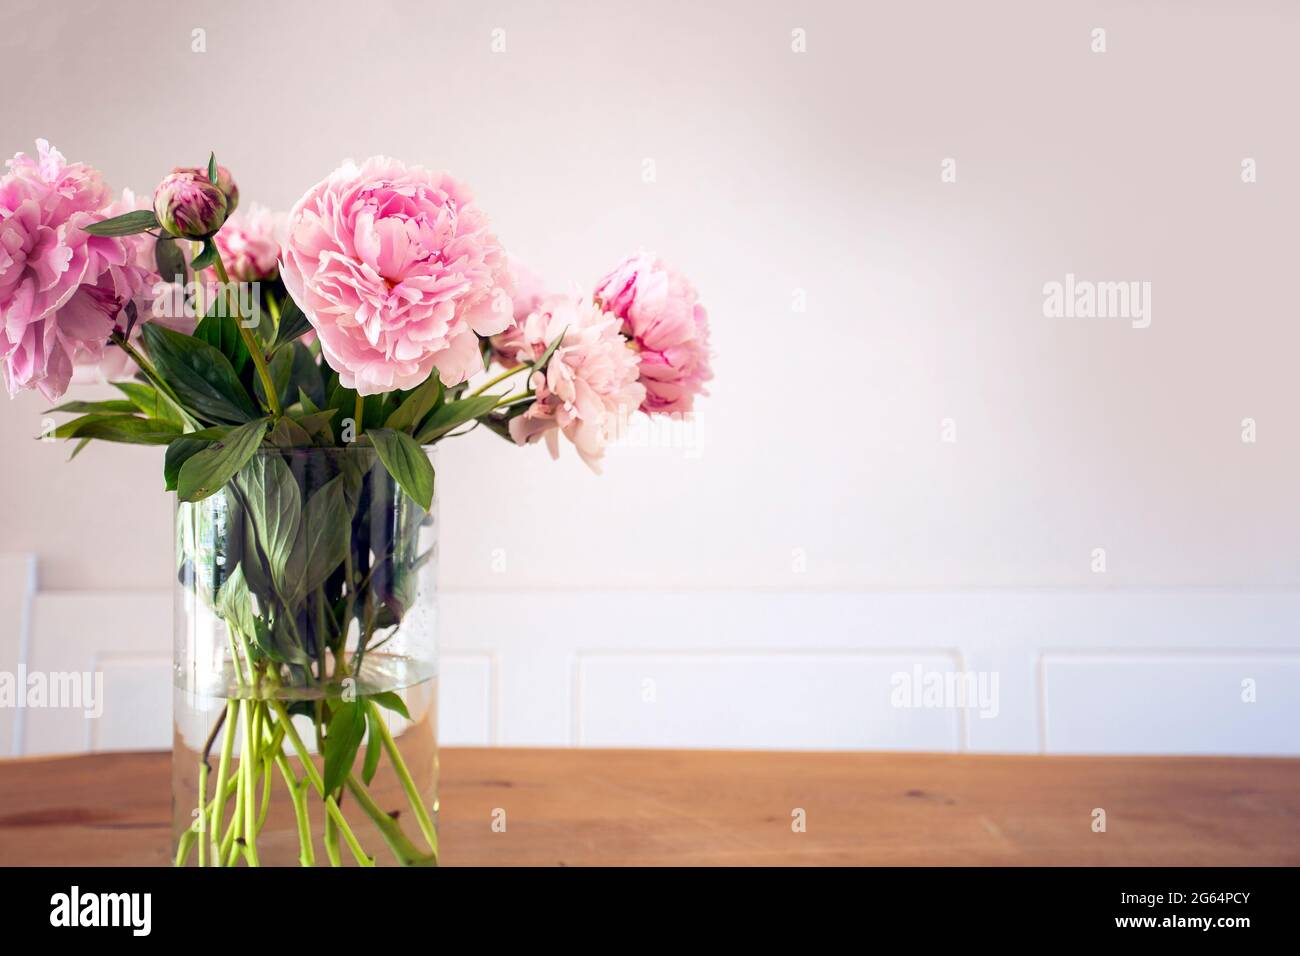 A bunch of pastel pink peony with green leaves in glass vase on the wooden table near white wall texture, cozy bright decoration for stylish house Stock Photo